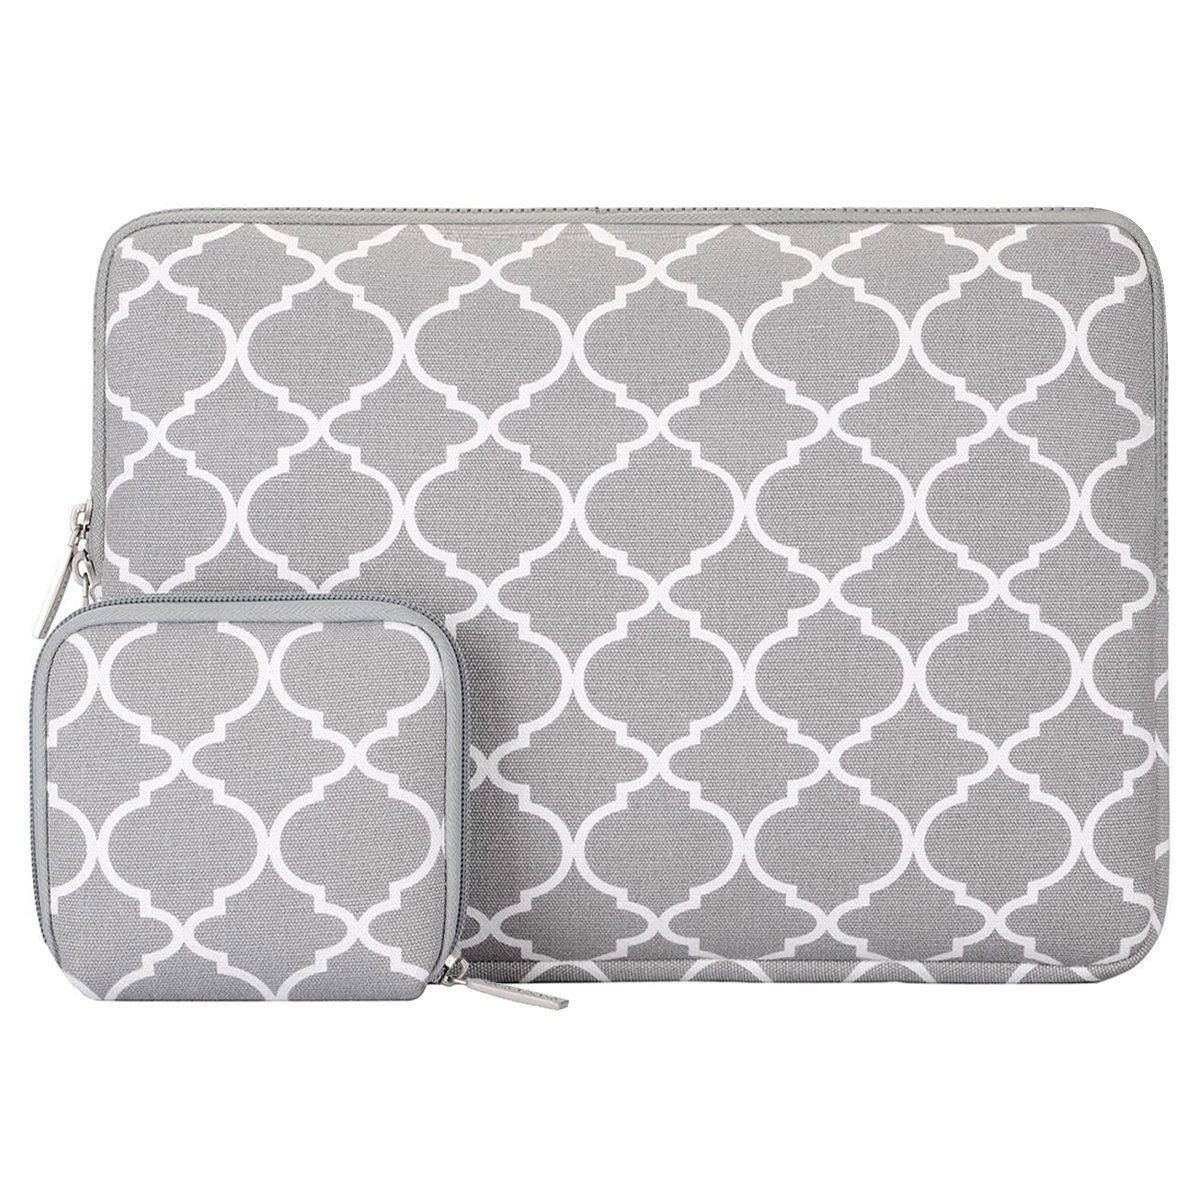 MOSISO Laptop Sleeve Bag Compatible 13-13.3 Inch MacBook Pro, MacBook Air, Notebook Computer with Small Case, Canvas Geometric Pattern Protective Carrying Cover, Gray Quatrefoil by MOSISO